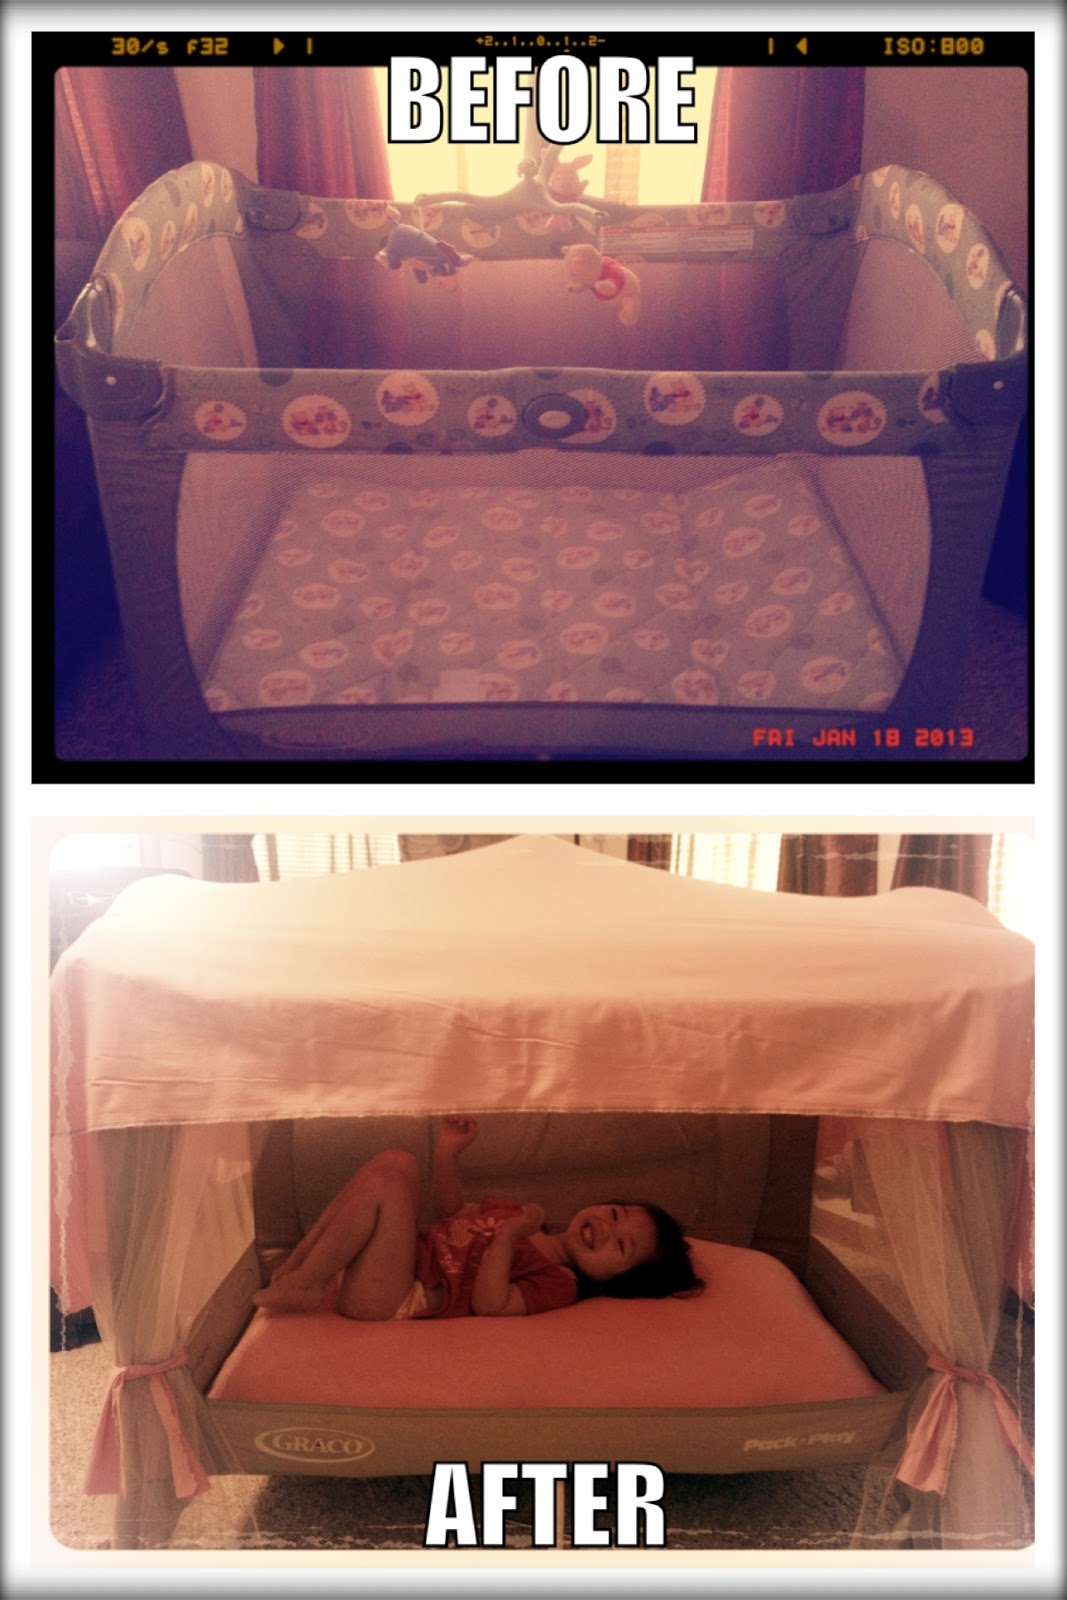 Making a diy toddler bed babygaga for Diy baby crib canopy